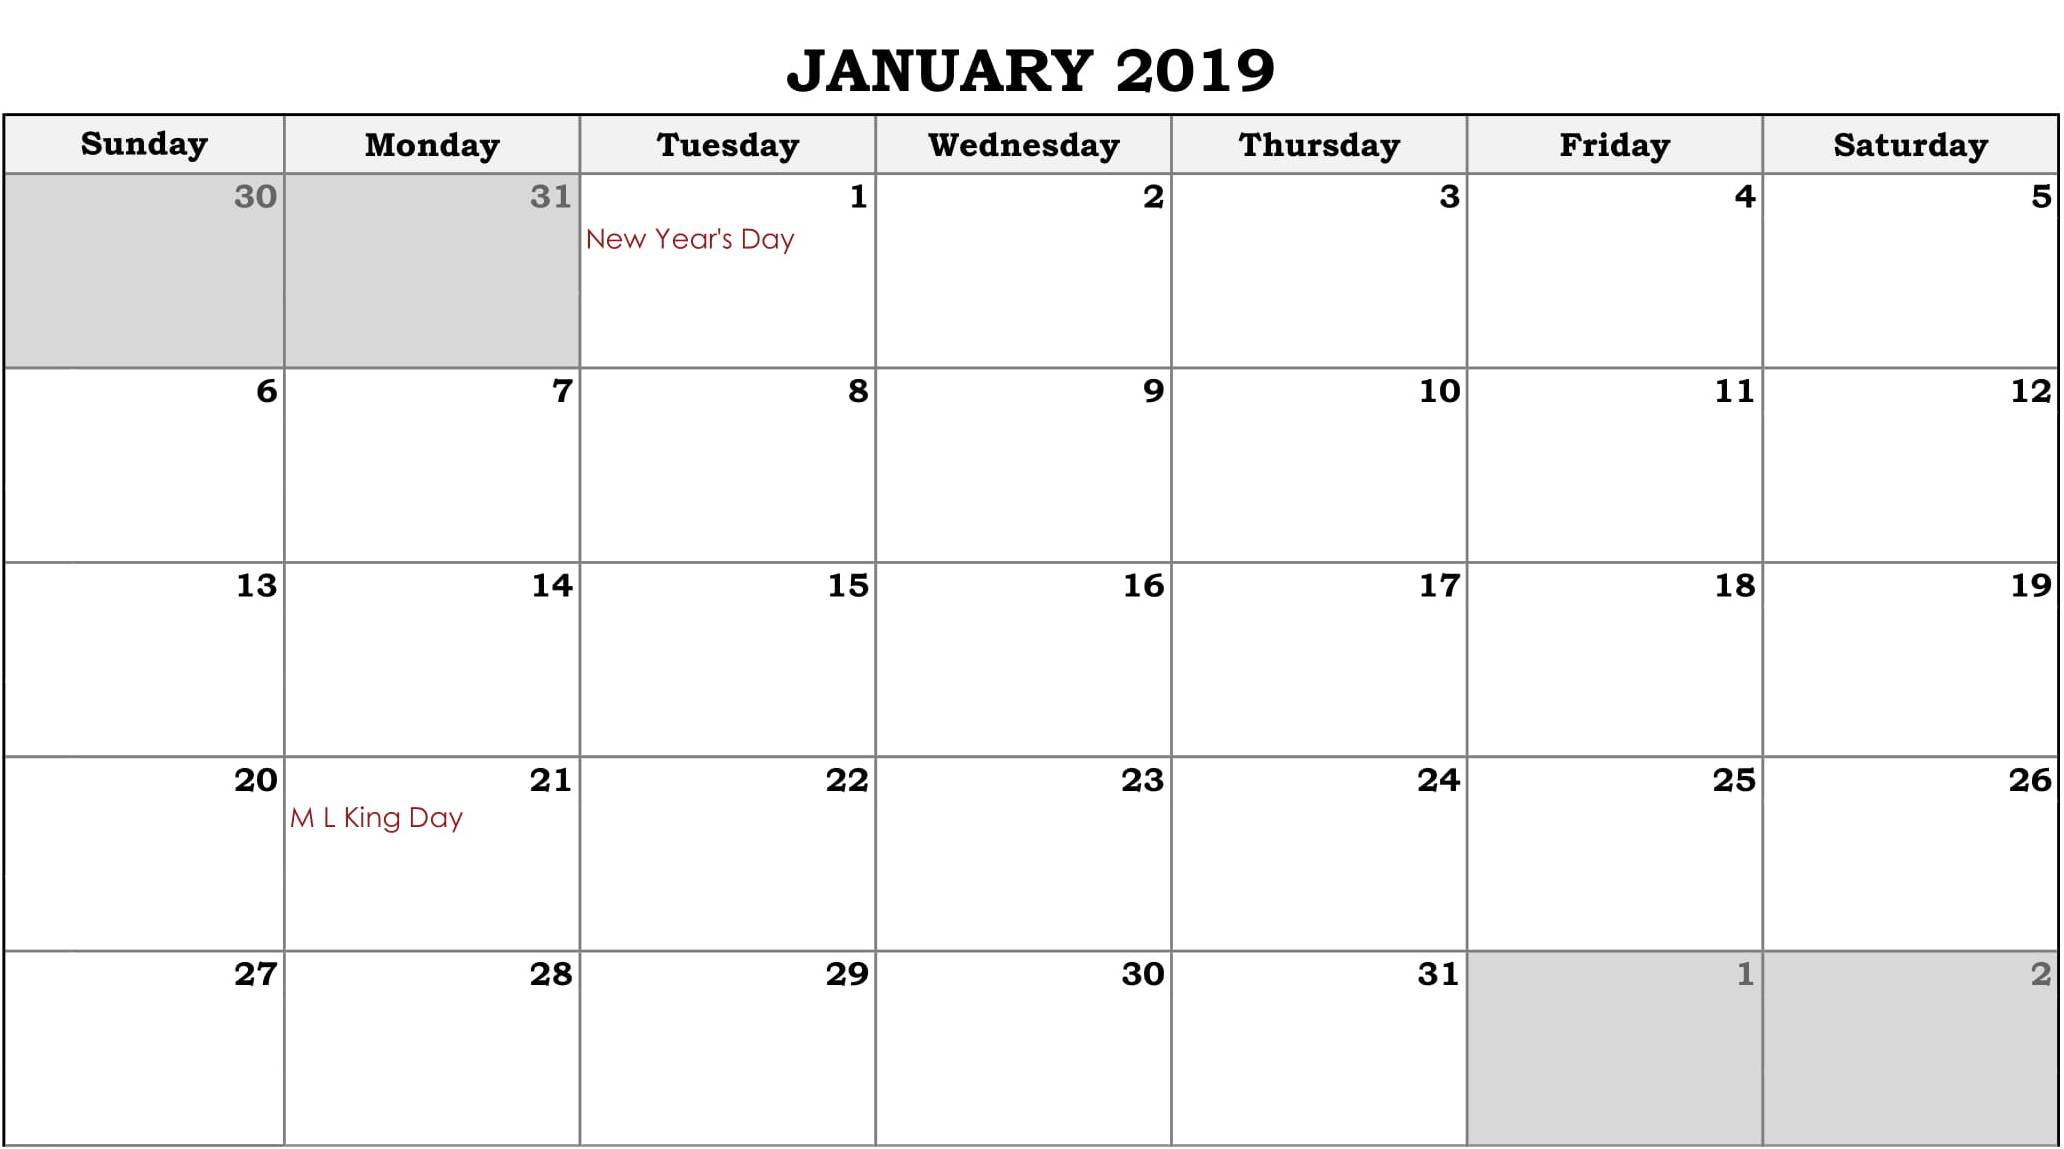 Online Fillable Calendar January 2019 - Free August 2019 Calendar within August - December Blank Calendar